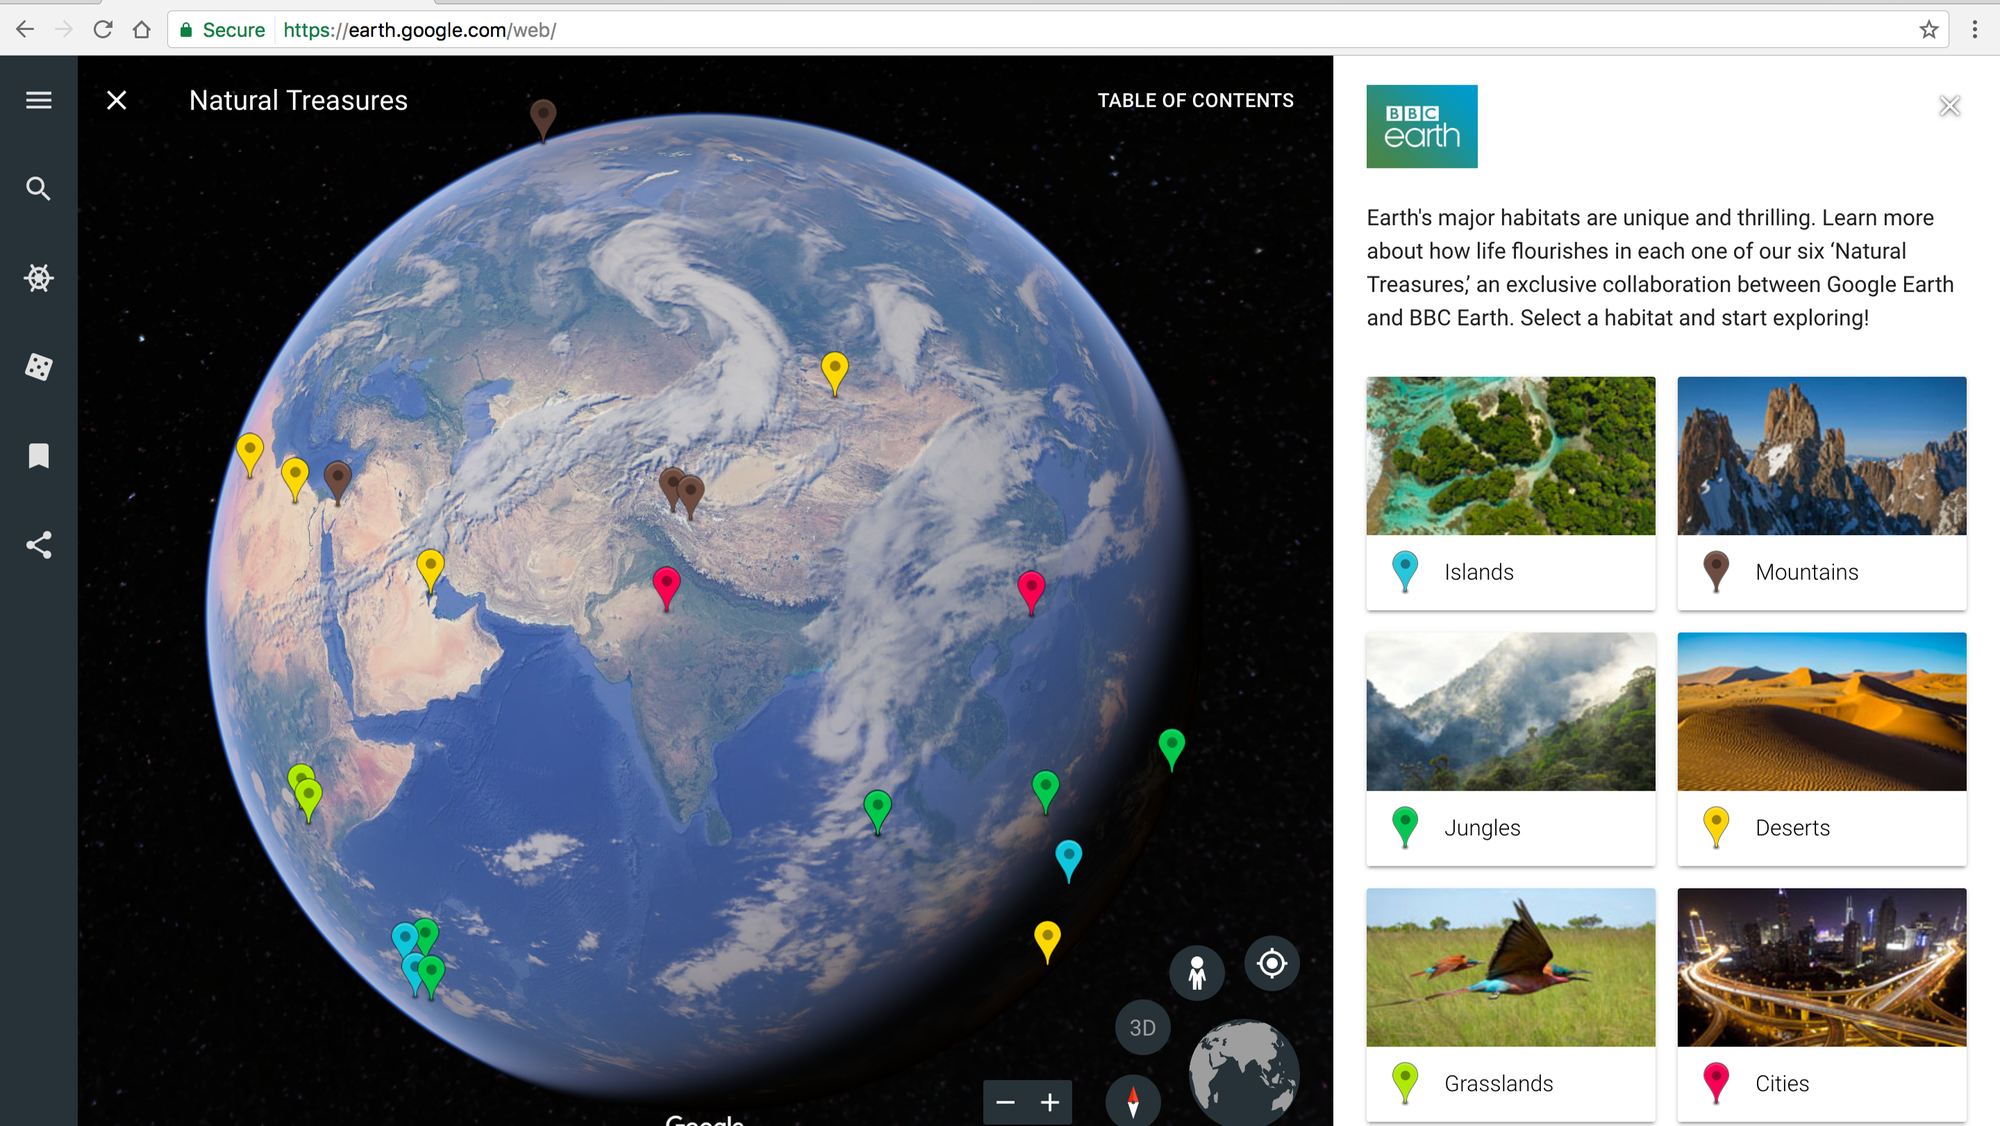 Google earth for chrome android gets upgraded with guided tours google earth for chrome android gets upgraded with guided tours more discovery features techcrunch gumiabroncs Gallery